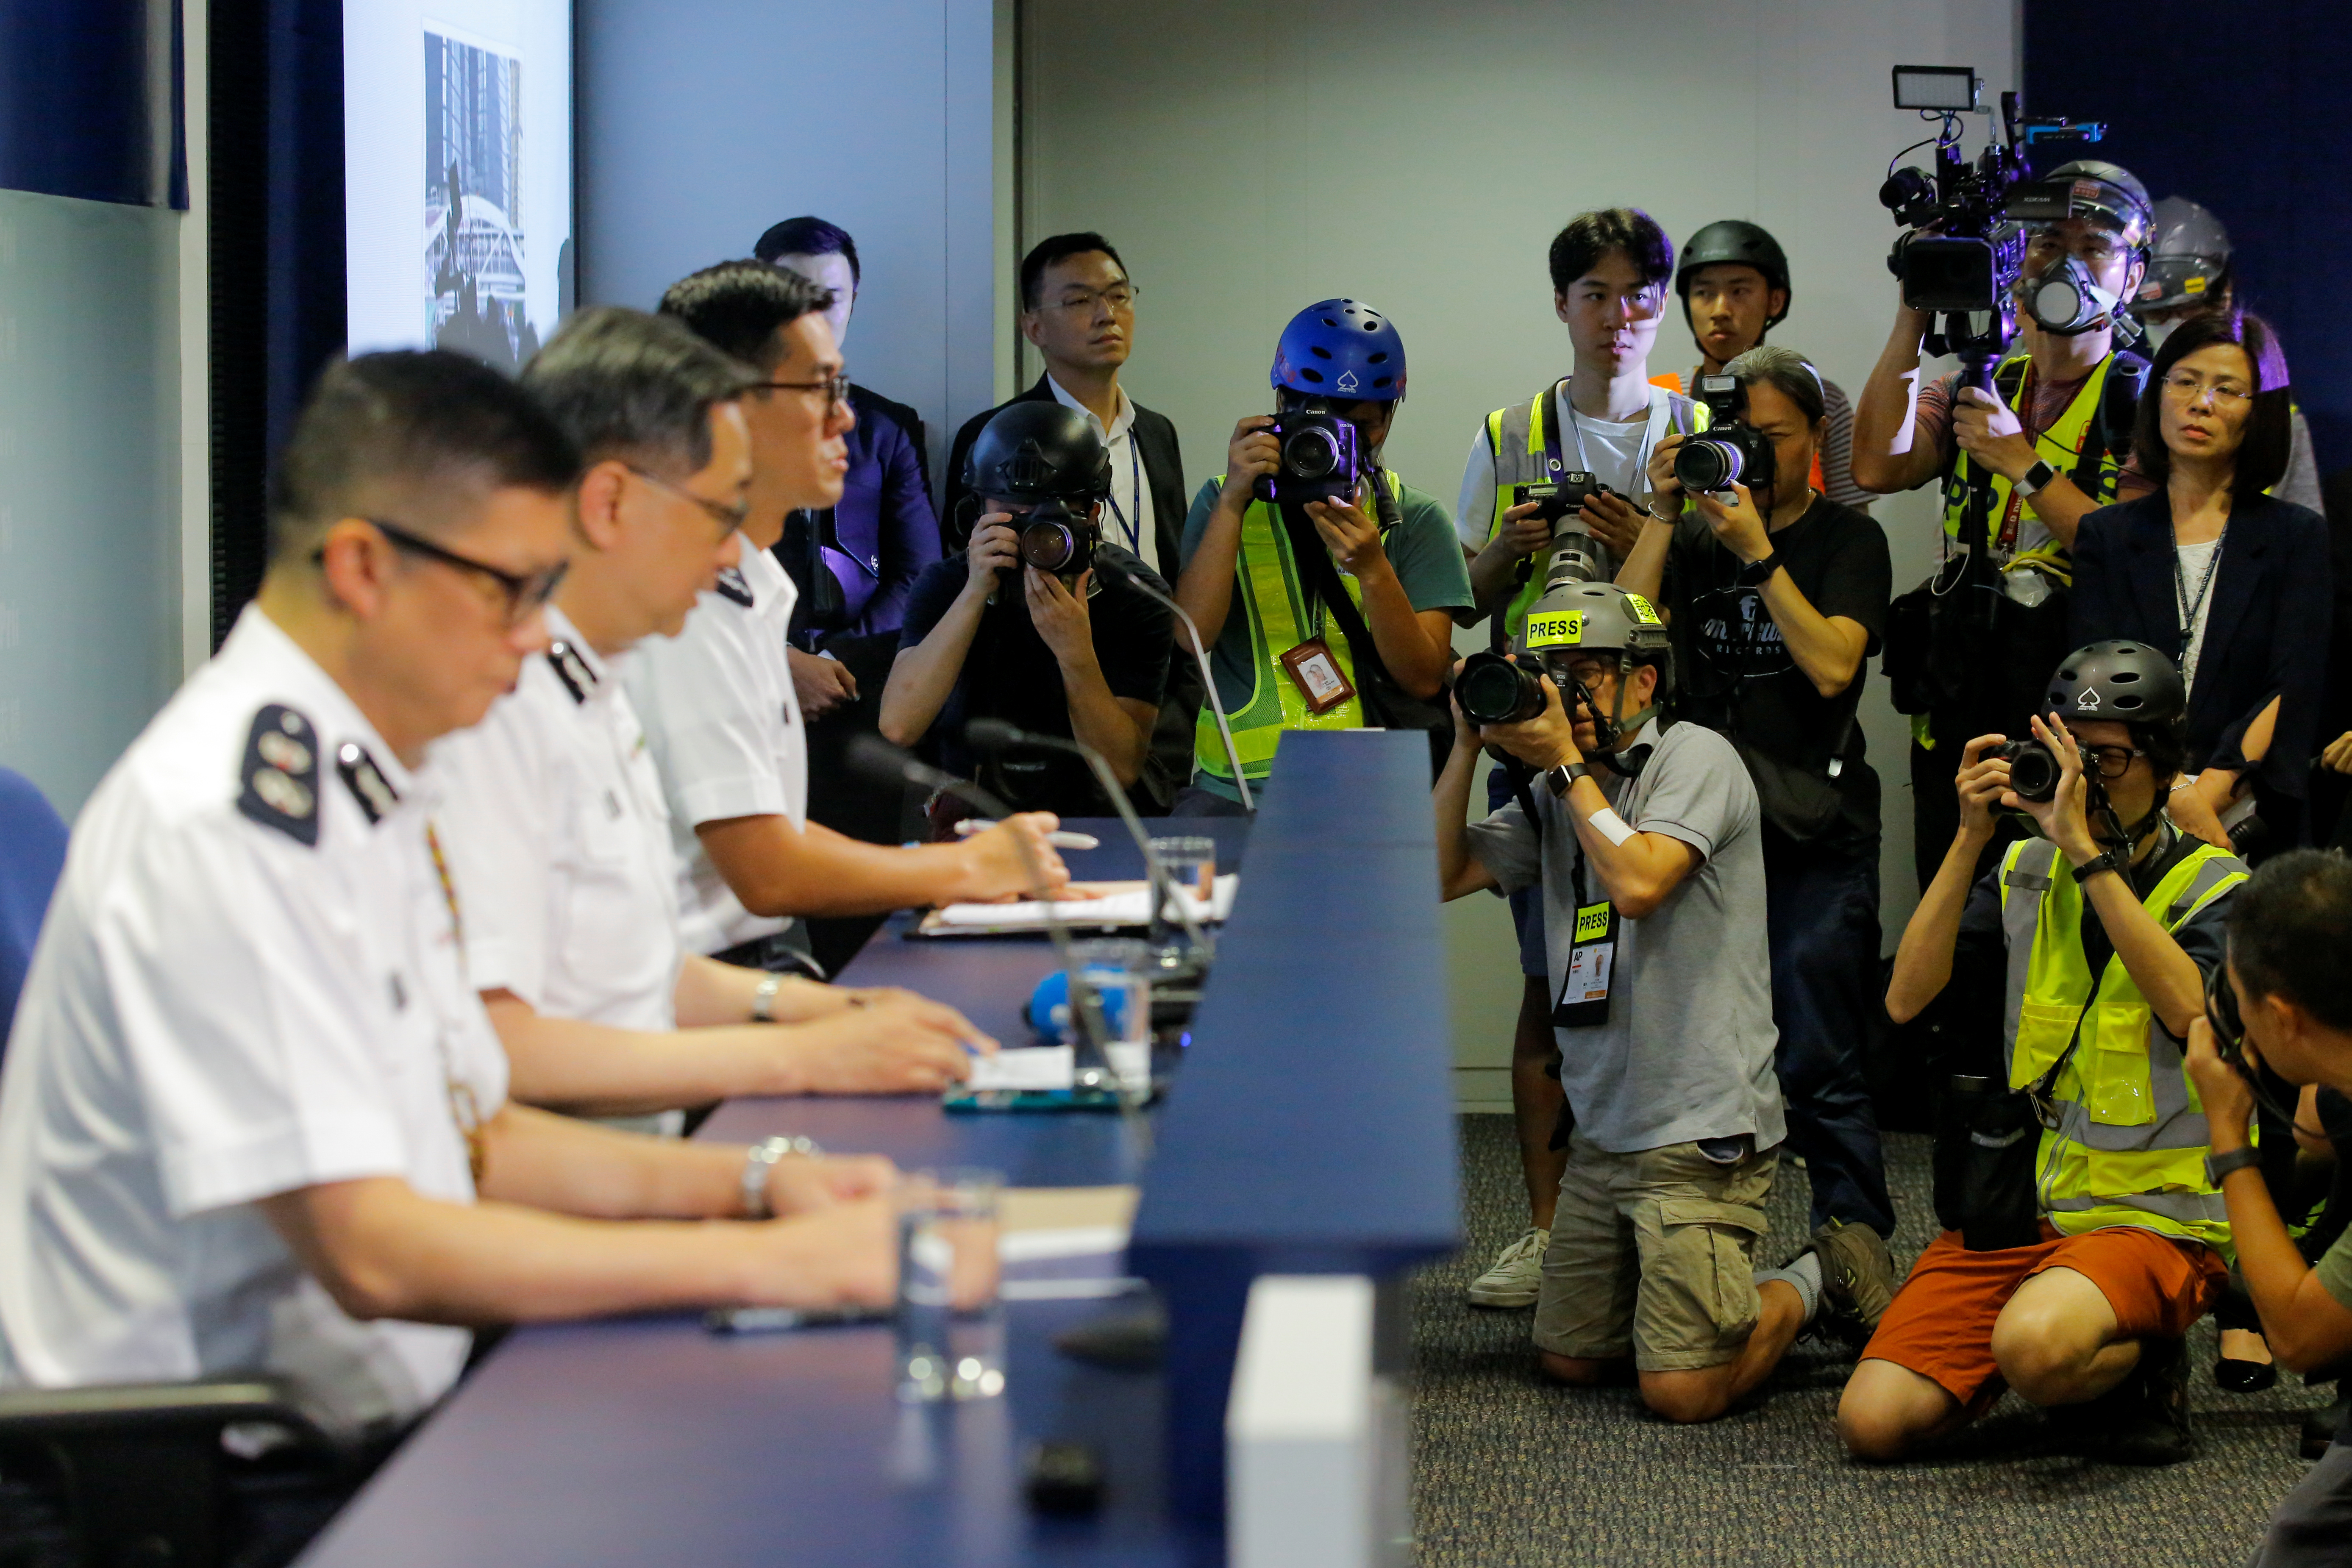 Hong Kong journalists took over a police news conference in protest